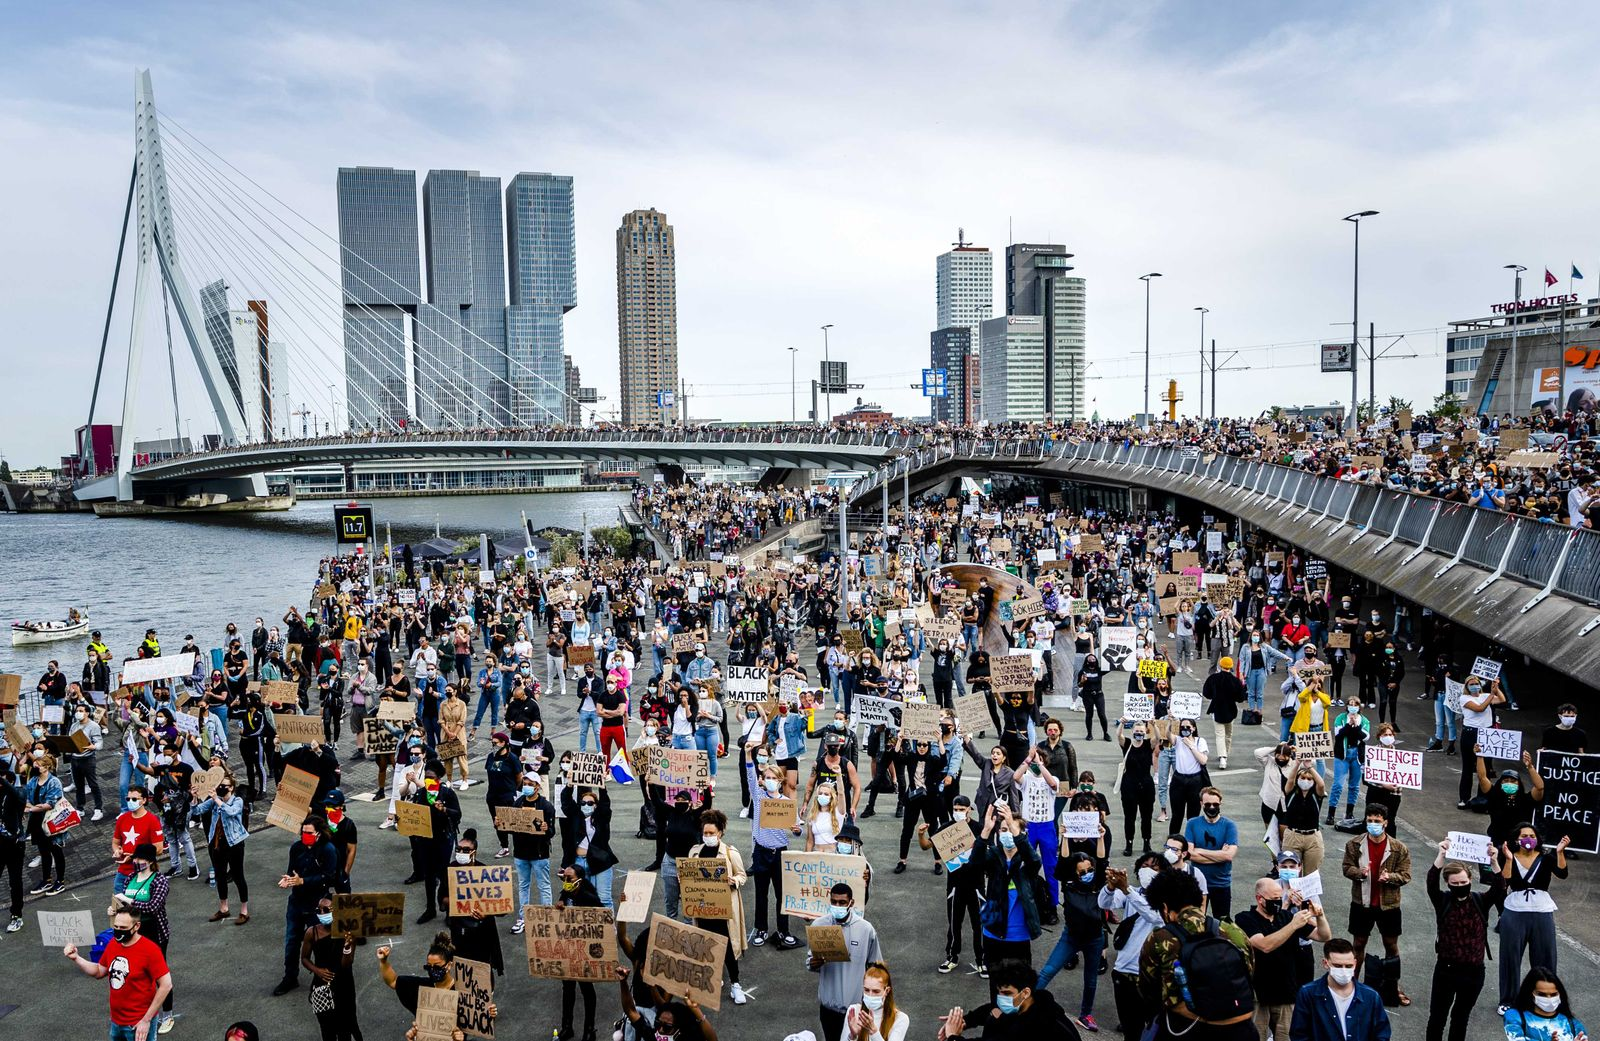 Rotterdam - Protest against Police brutality in USA, Netherlands - 03 Jun 2020